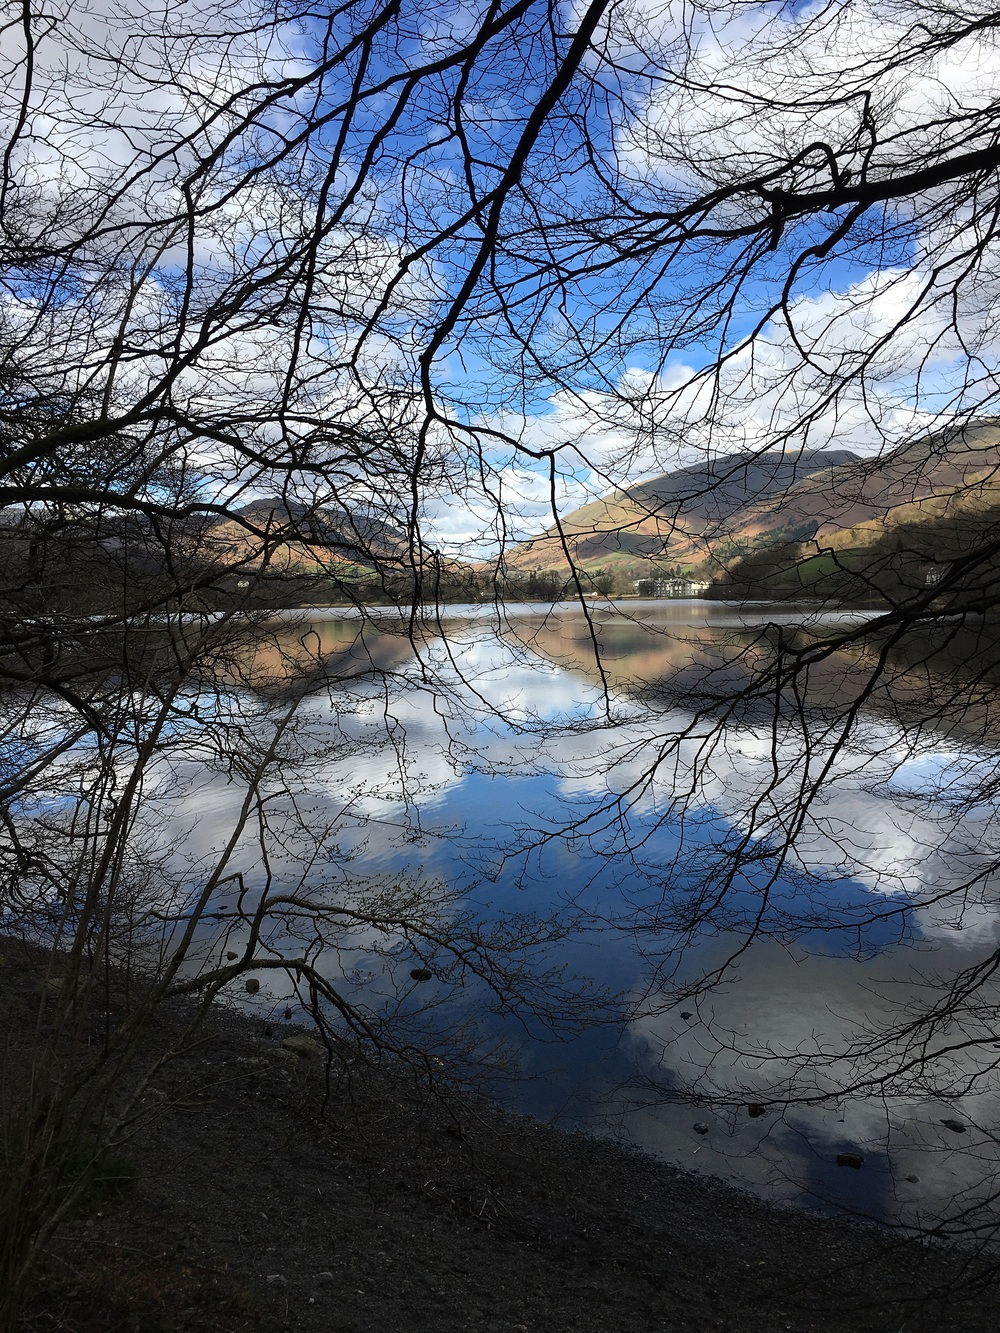 Reflection on Grasmere